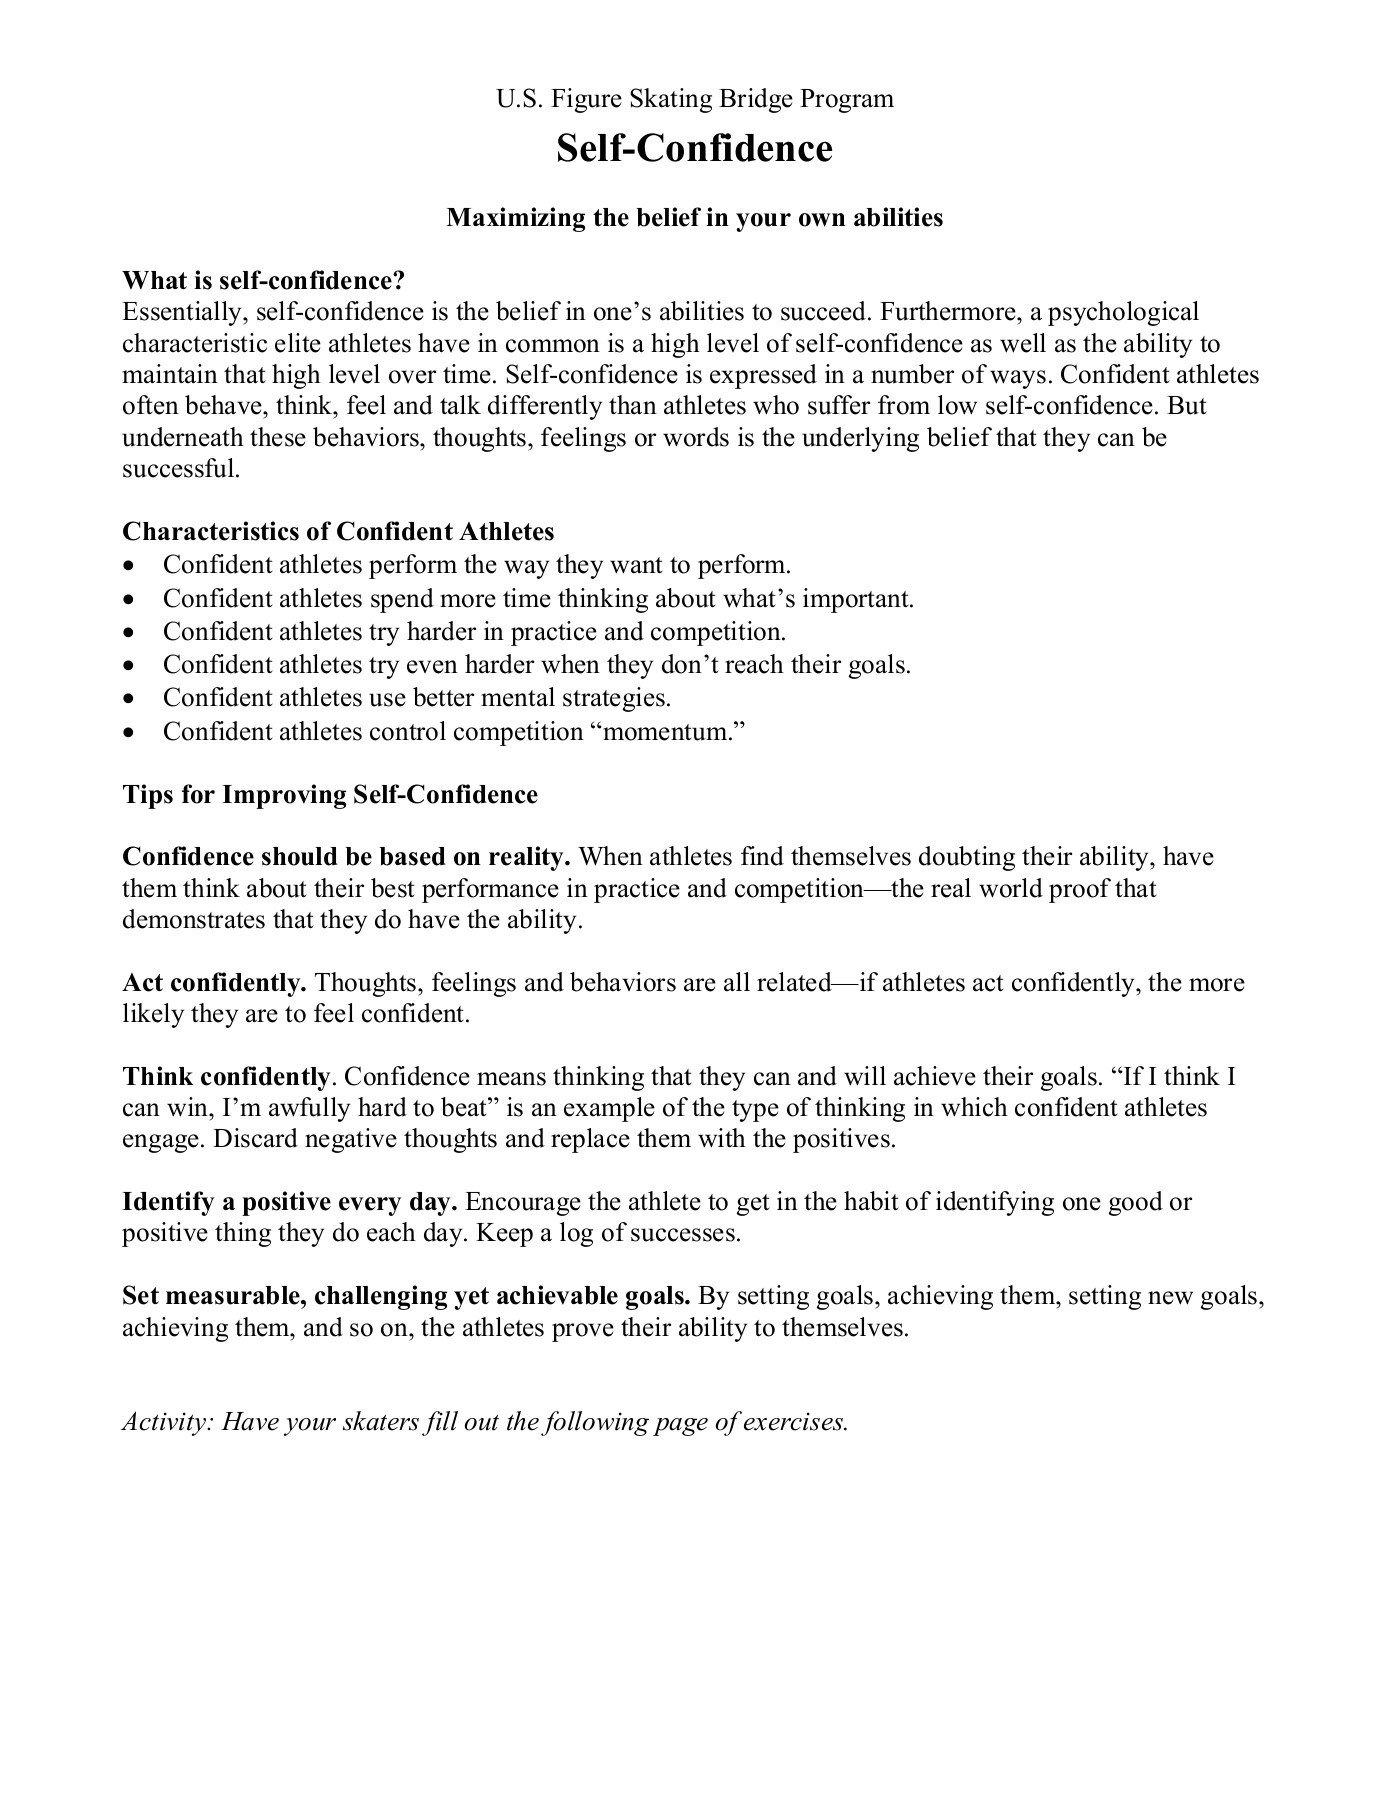 Self Esteem Worksheets Pdf Goal Setting and Self Confidence Worksheets Pdf Pages 1 4